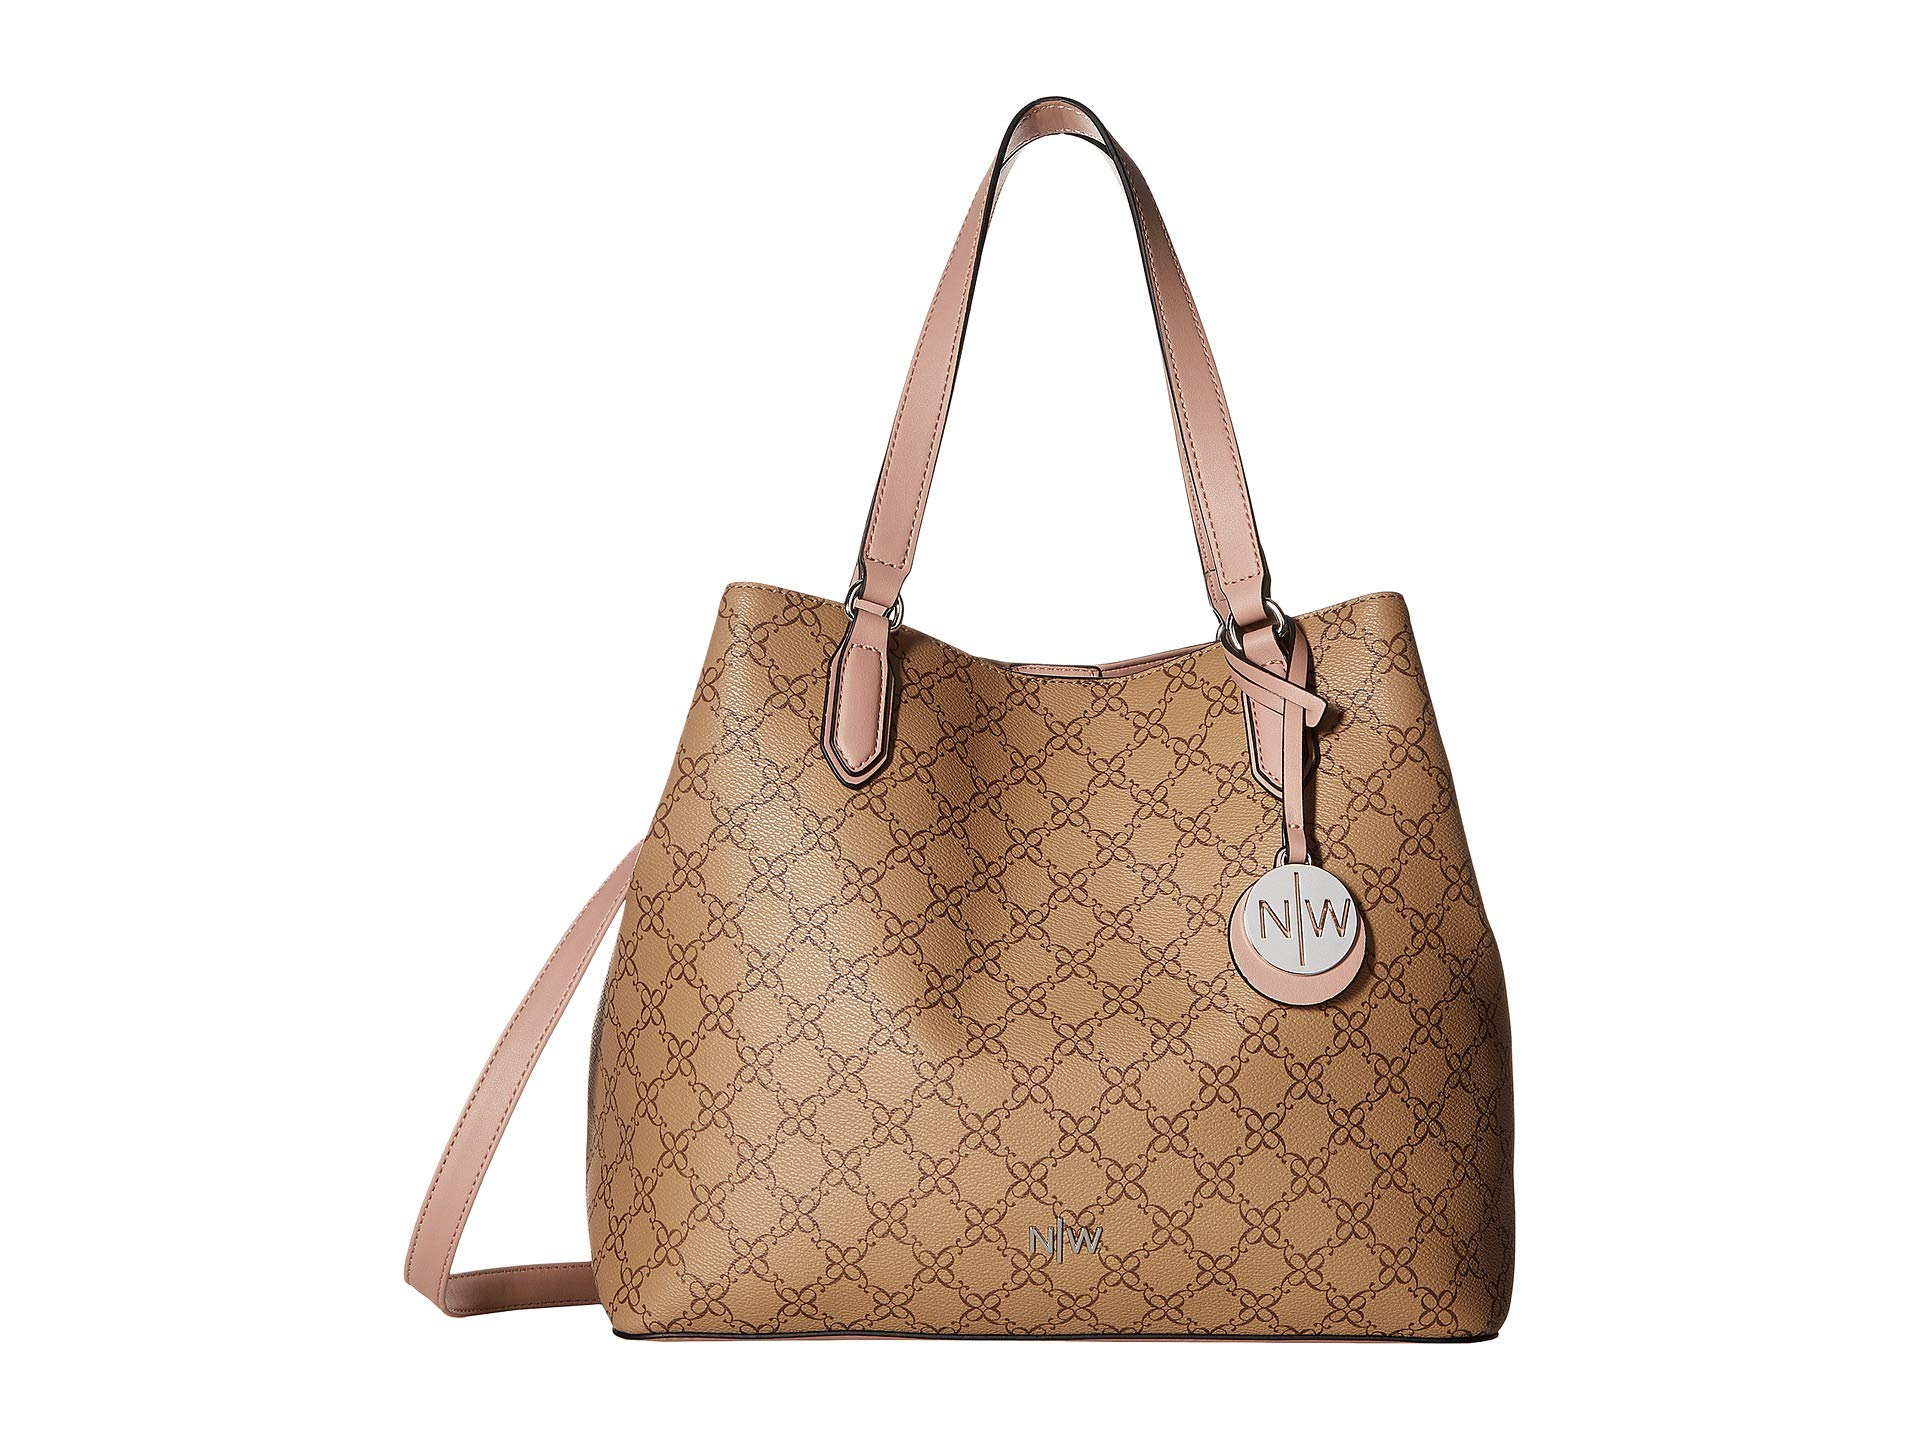 West Mocha Tote Bryn Nine West Bryn Tote Nine wqnH8UF1